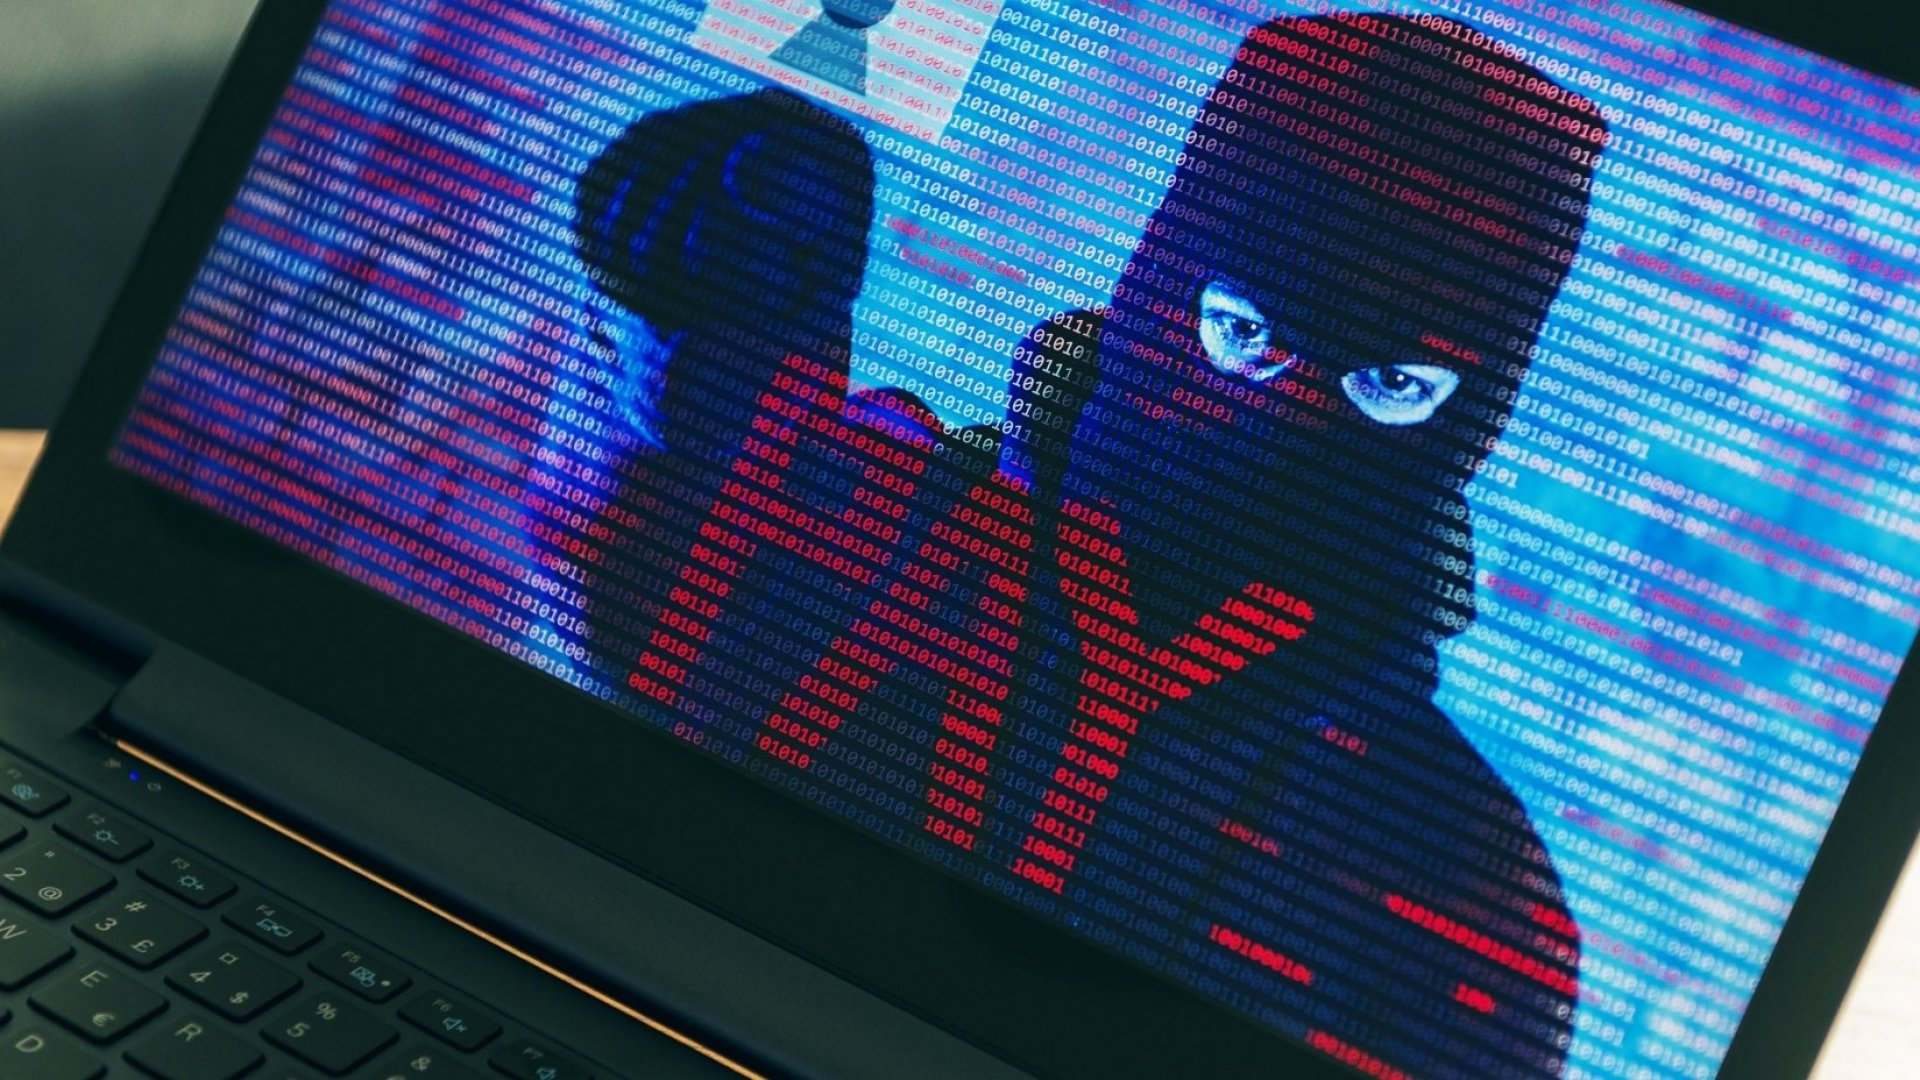 Whoever Created the WannaCry Ransomware, Analysis Shows They Speak Chinese